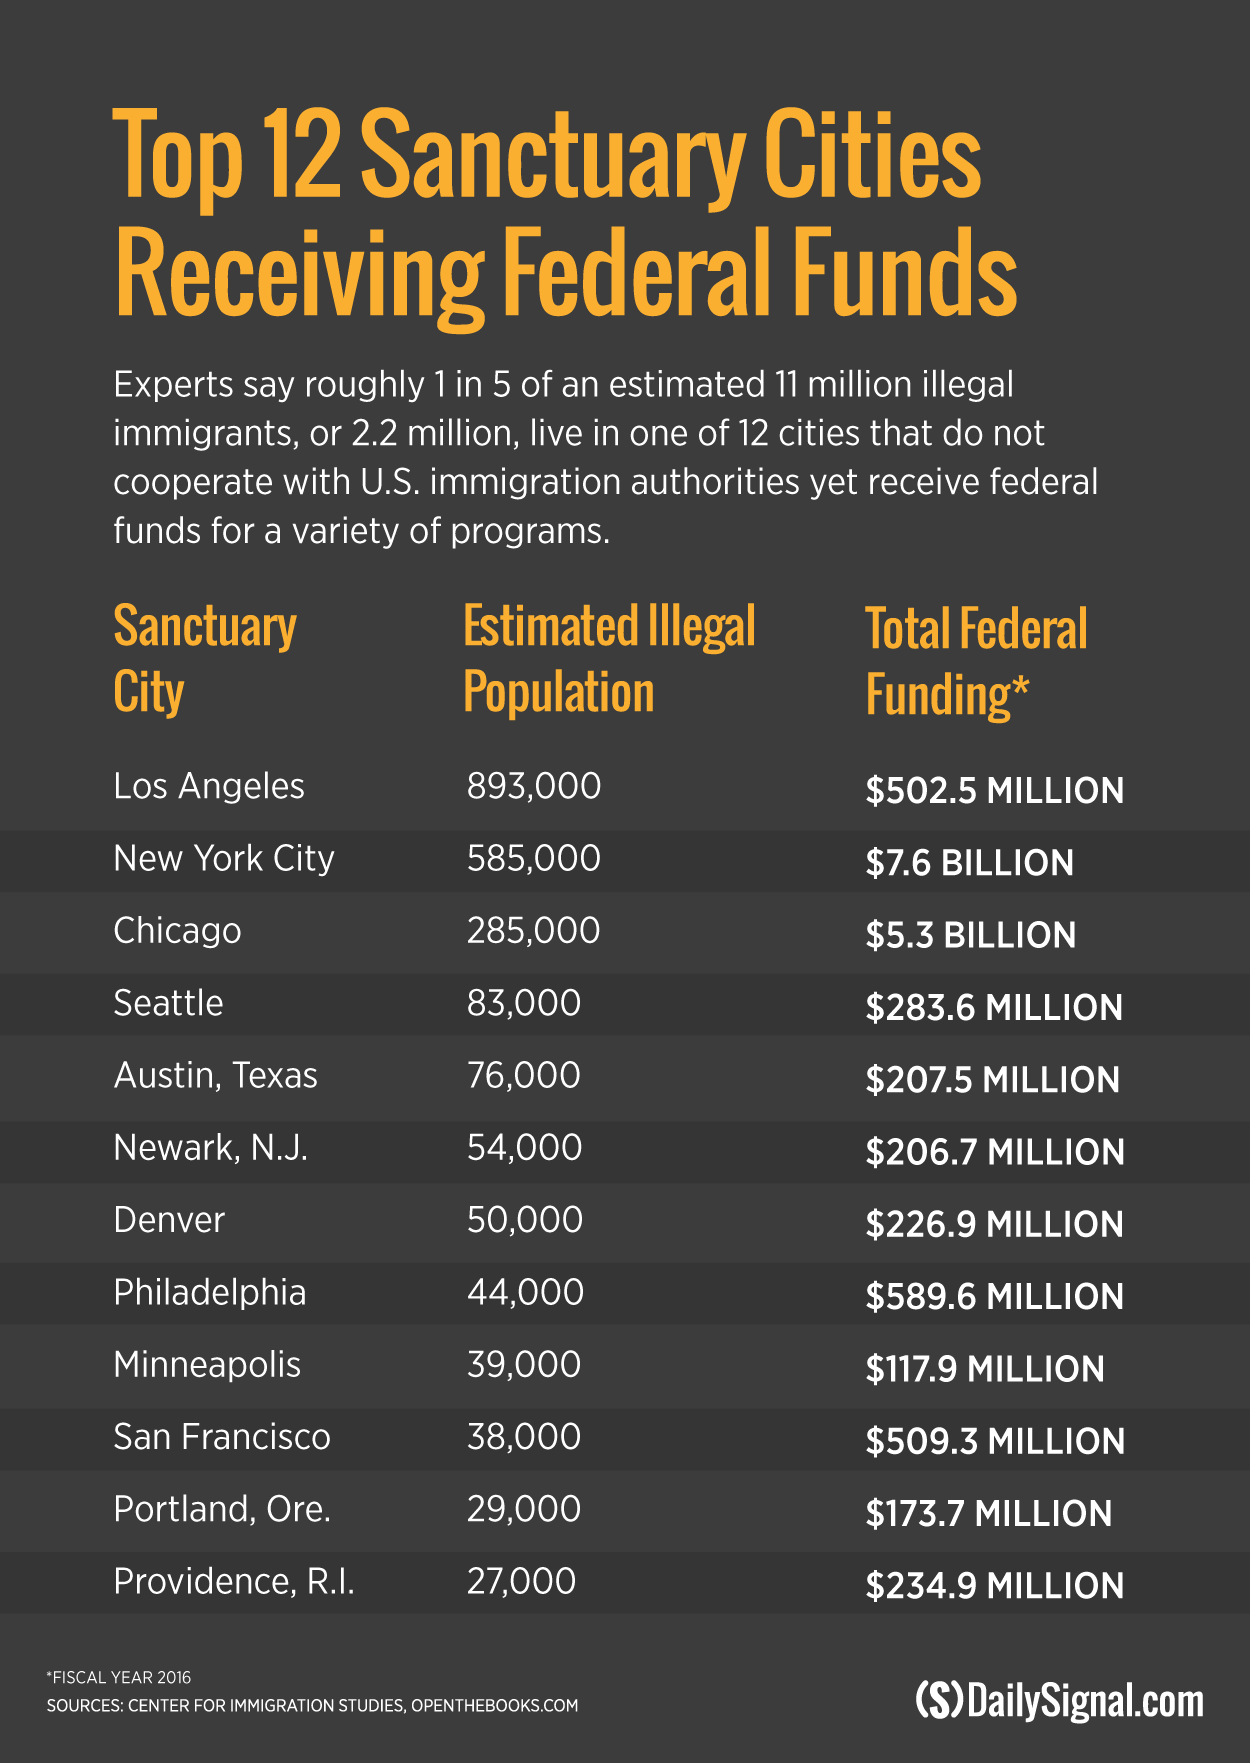 STOP THE FEDERAL FUNDING